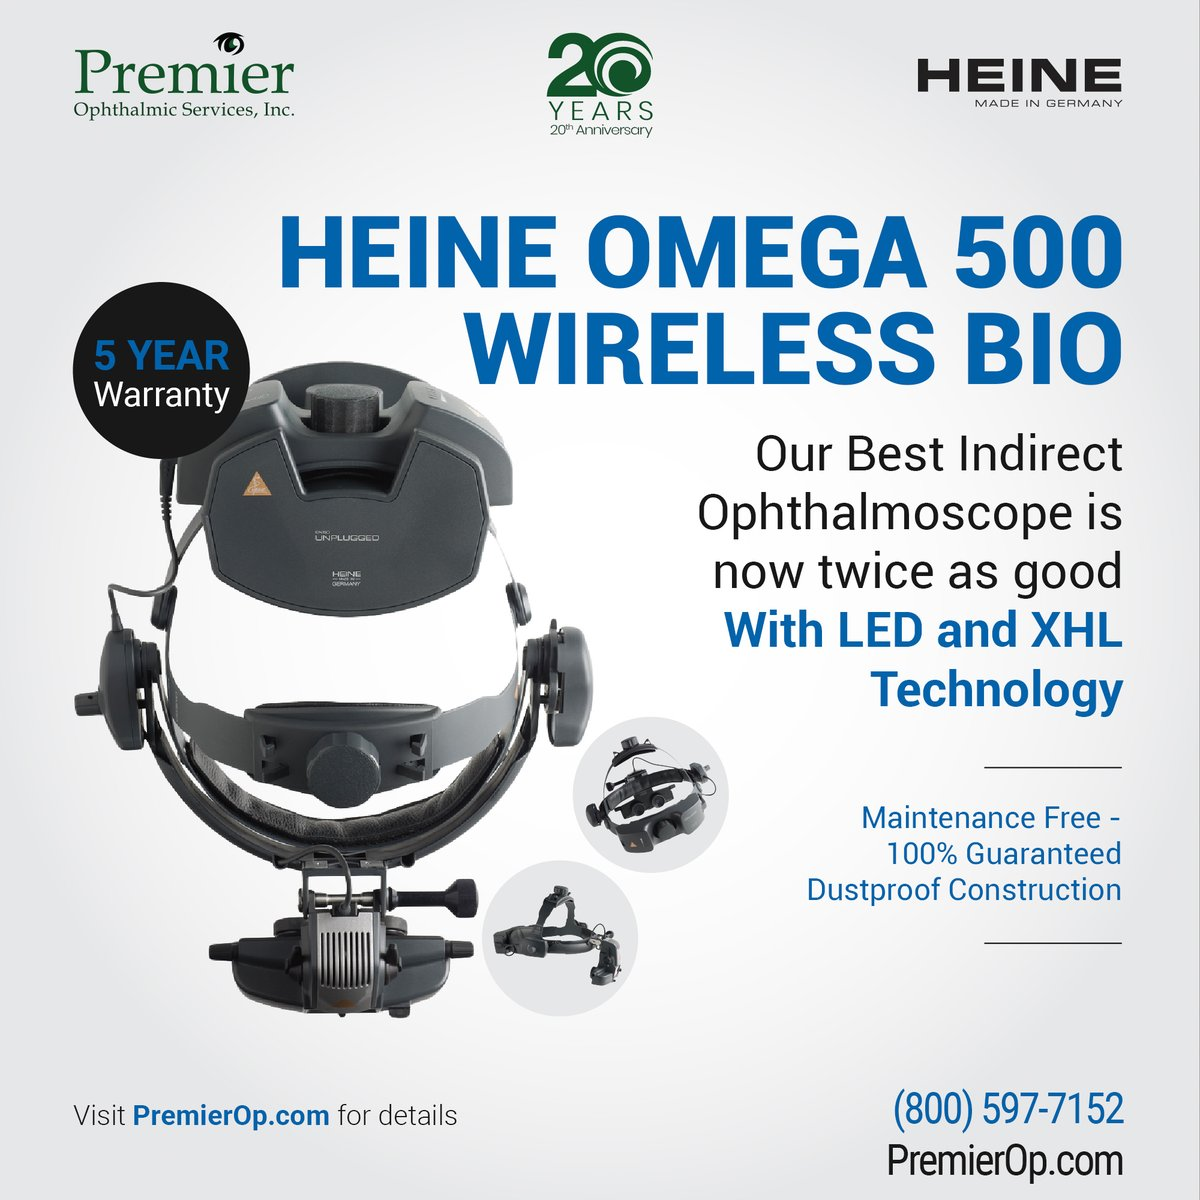 The maintenance free Omega 500 from Heine also includes a 5 Year Warranty. Comes with LED and XHL as standard! Learn more at http://bit.ly/31Z39UC #Optometry #Ophthalmology #Heinepic.twitter.com/GXVzVoZUJx